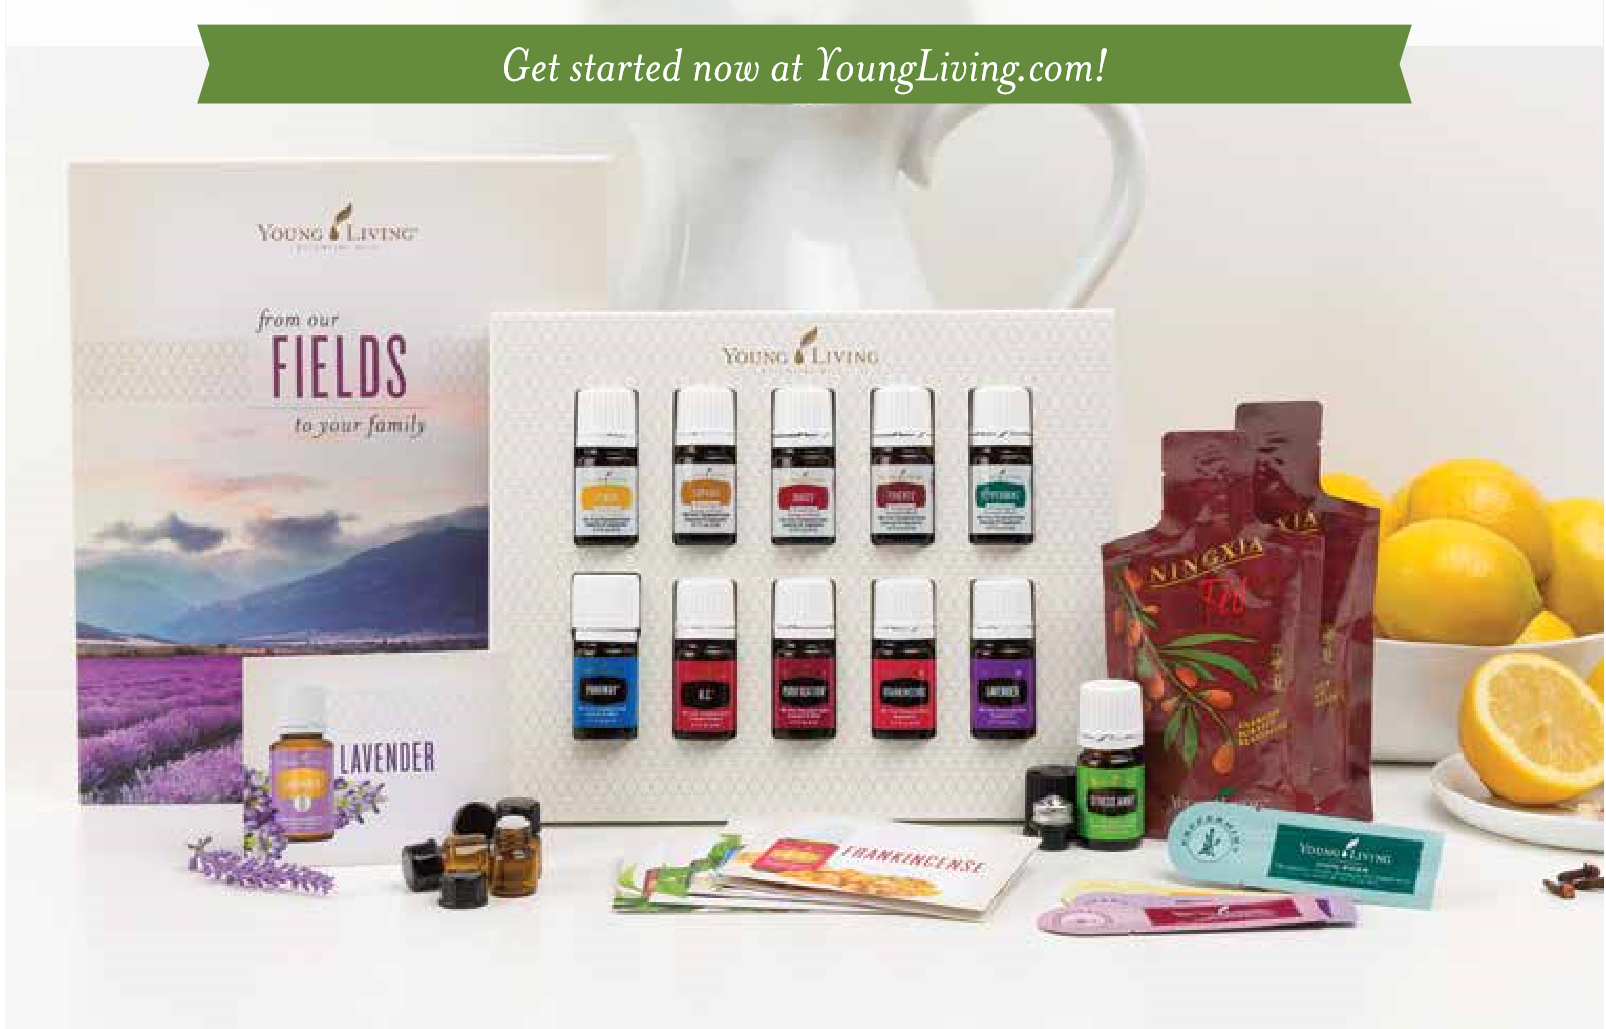 How To Order The Essential Oils Premium Starter Kit Busy Wife Young Living Now That Youre Ready Move Forward Toward A Chemical Free And Healthy Lifestyle With Get Started By Clicking This Link